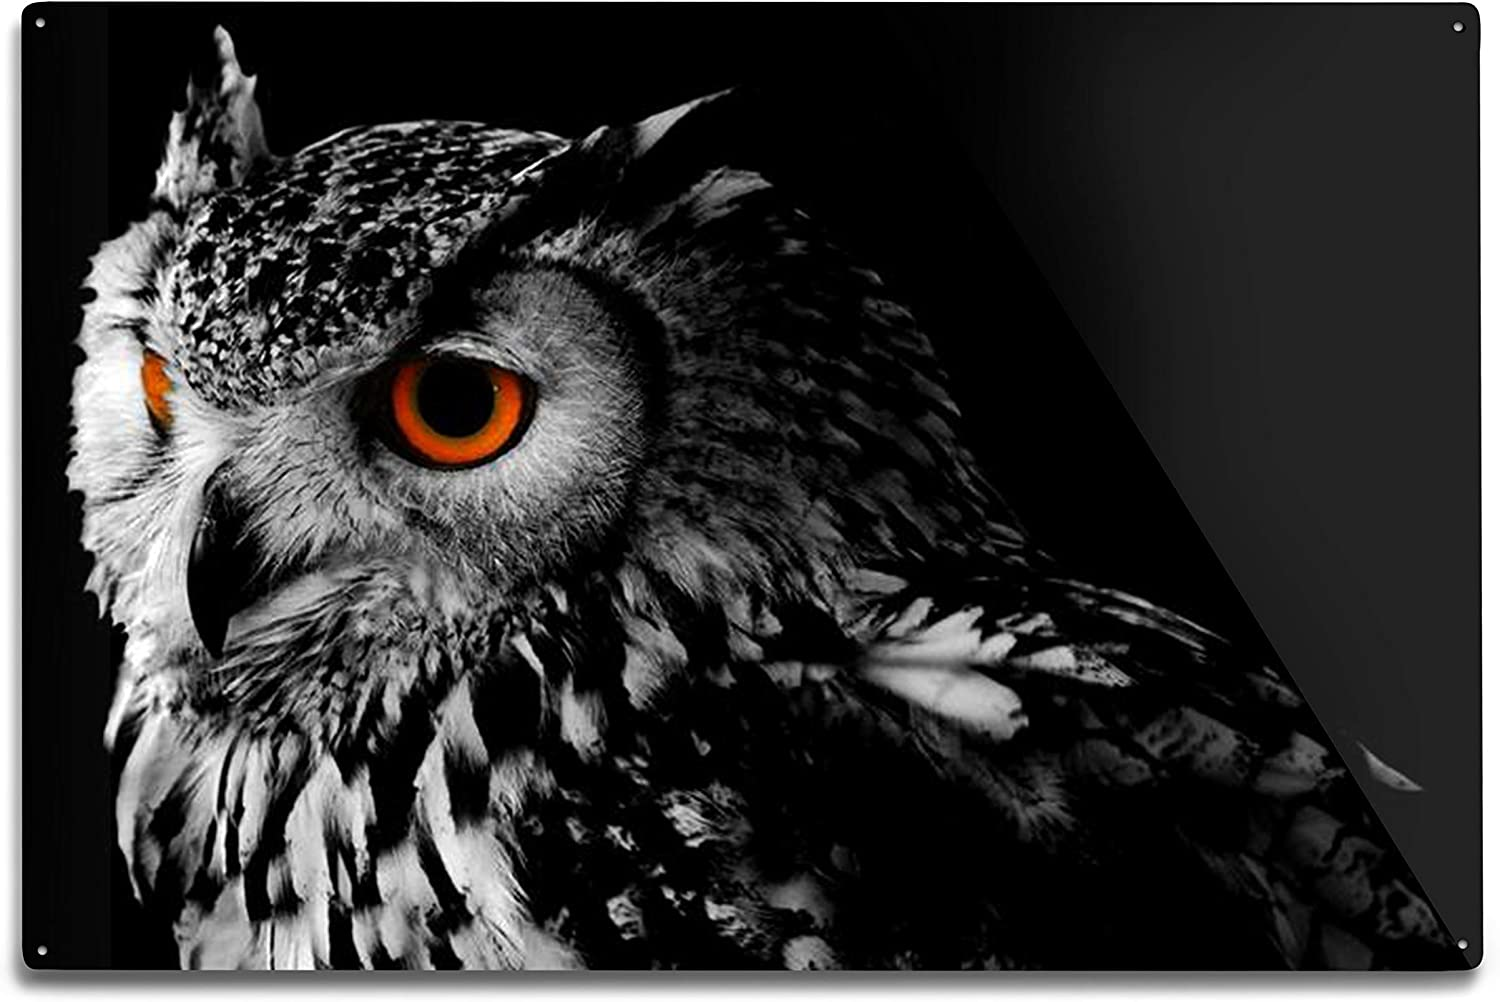 Lantern Press Bengali Eagle Owl Portrait in Black & White with Red Eyes A-9004493 (12x18 Aluminum Wall Sign, Metal Wall Decor)